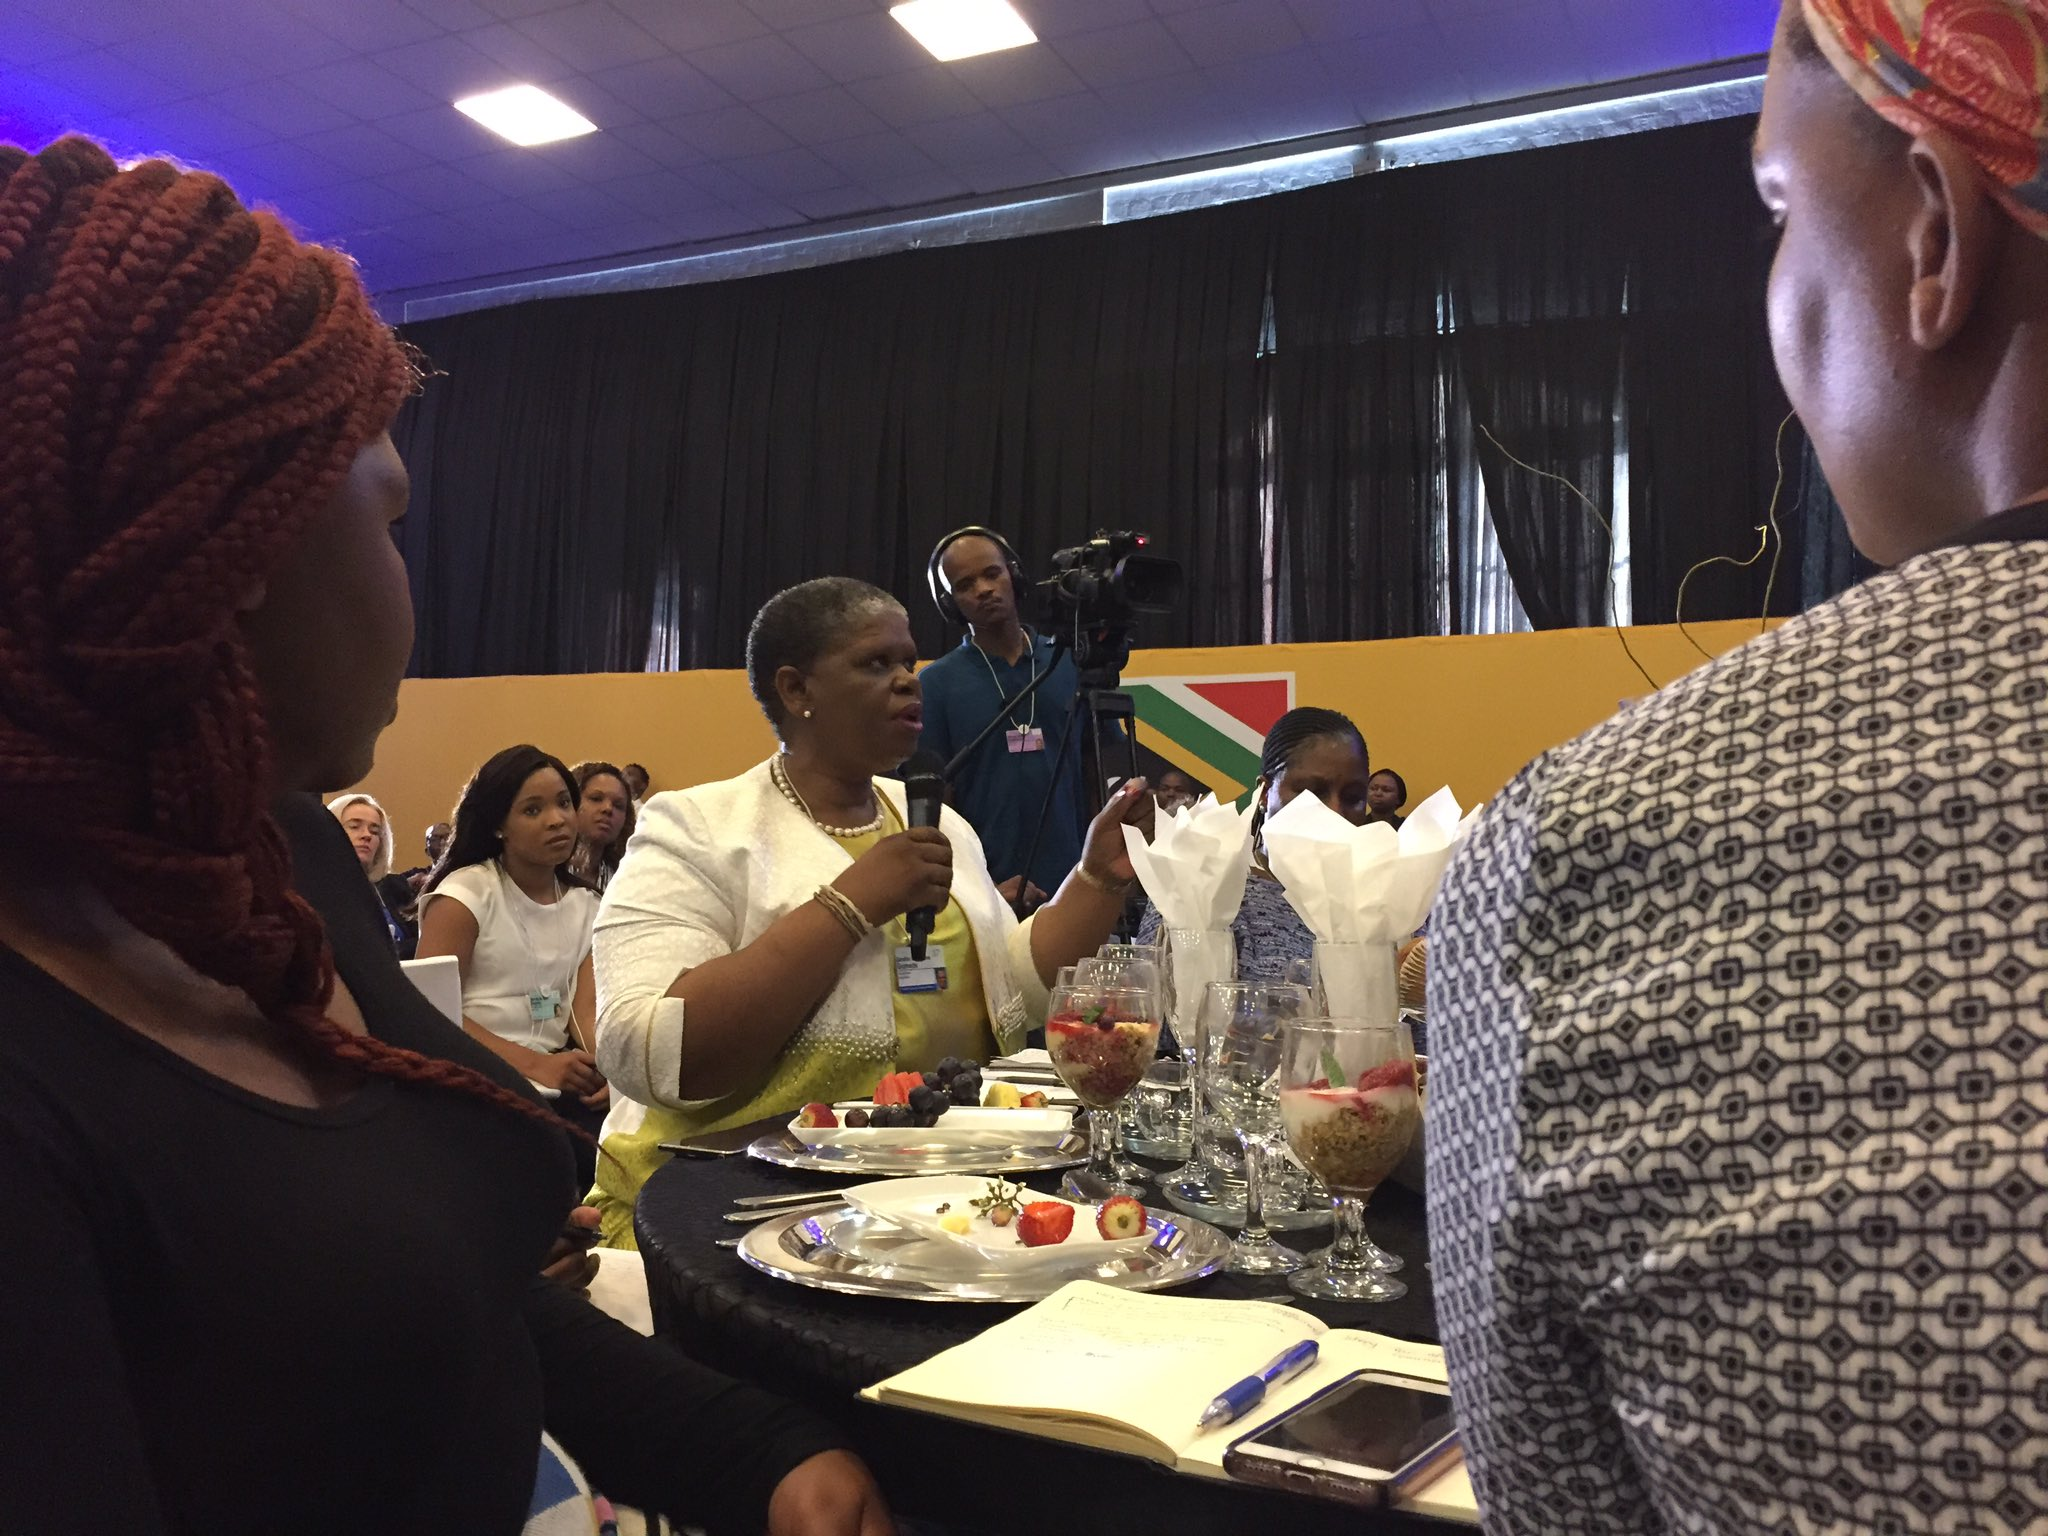 How are youth who have had opportunity assisting those who have not seen the light yet? #BrandSAYouthBreakfast #WEFAfrica2017 cc @Brand_SA https://t.co/09fX0gtFuL